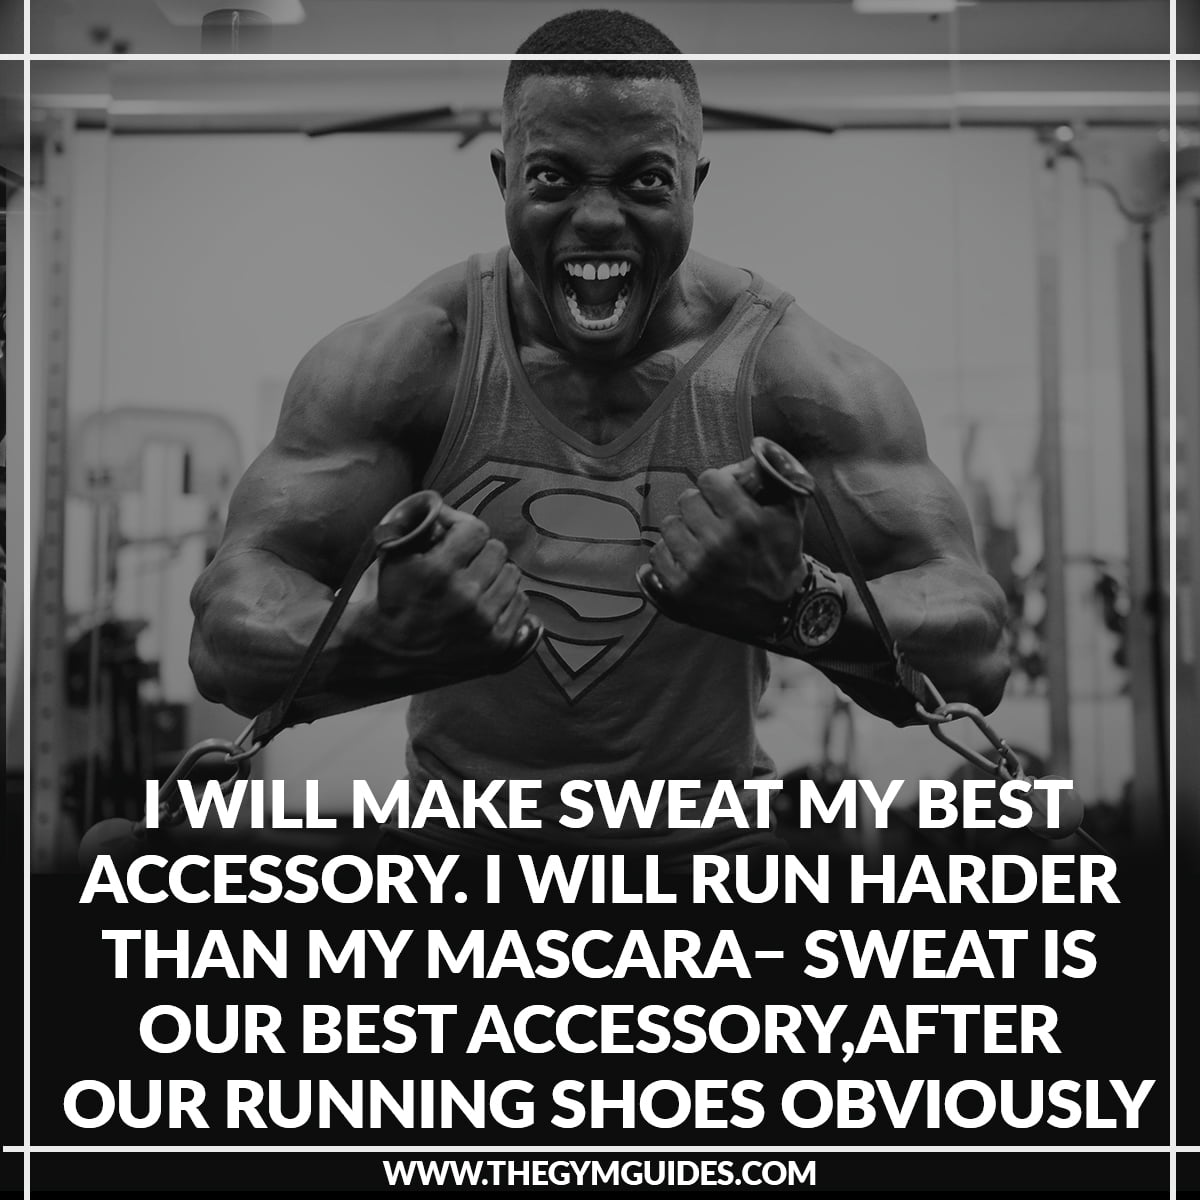 I will make Sweat my best Accessory. I will run harder than my Mascara – sweat is our best accessory, after our running shoes obviously!